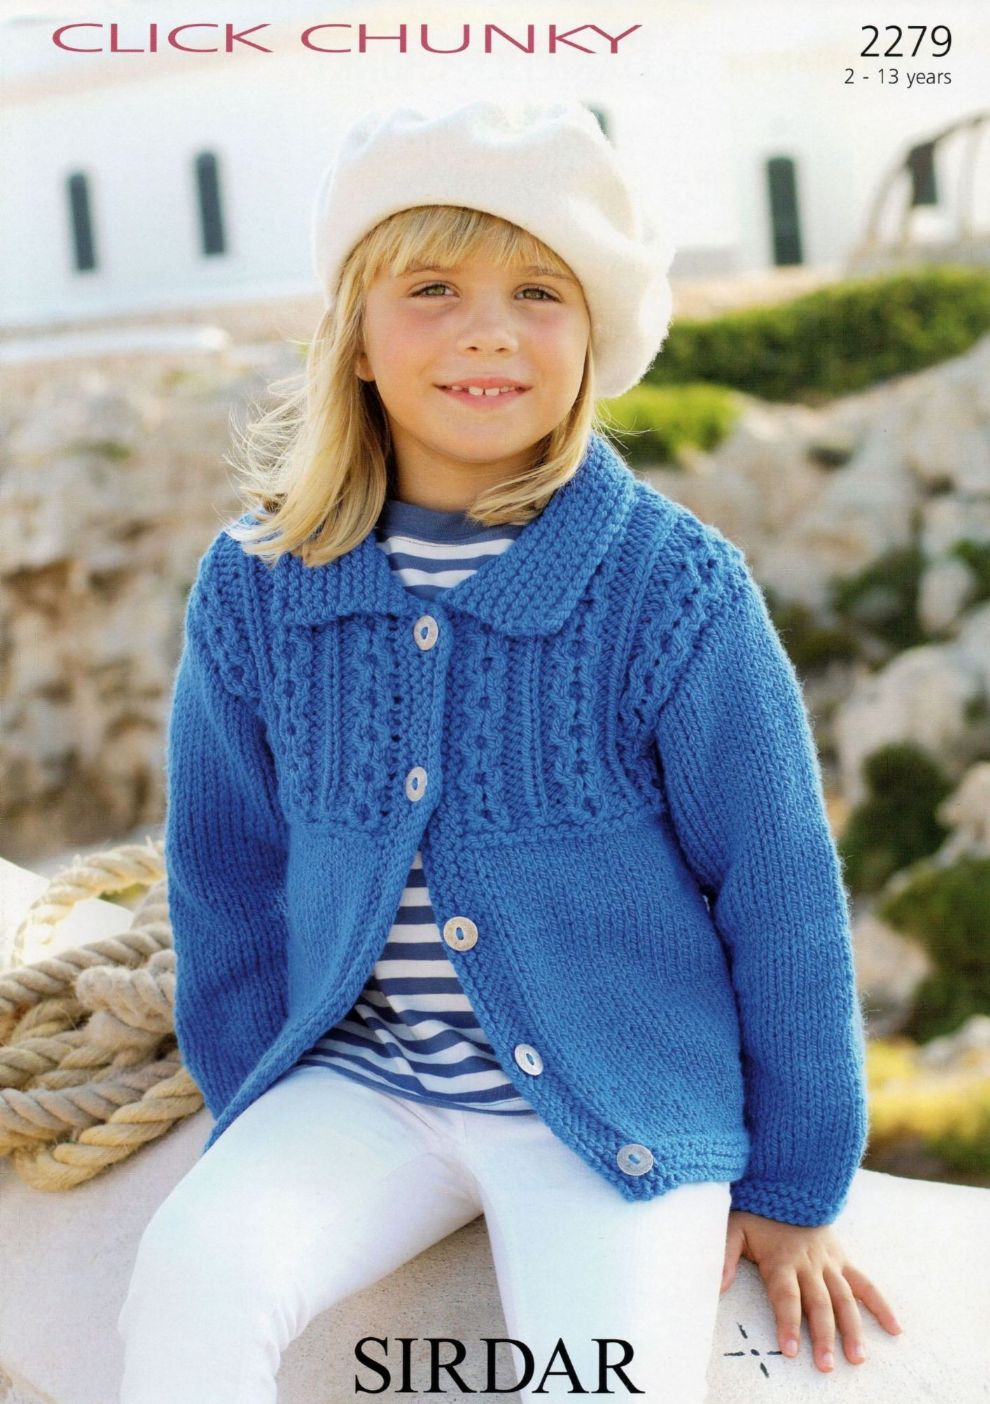 2279 - SIRDAR CLICK CHUNKY CARDIGAN KNITTING PATTERN - TO FIT 2 TO ...